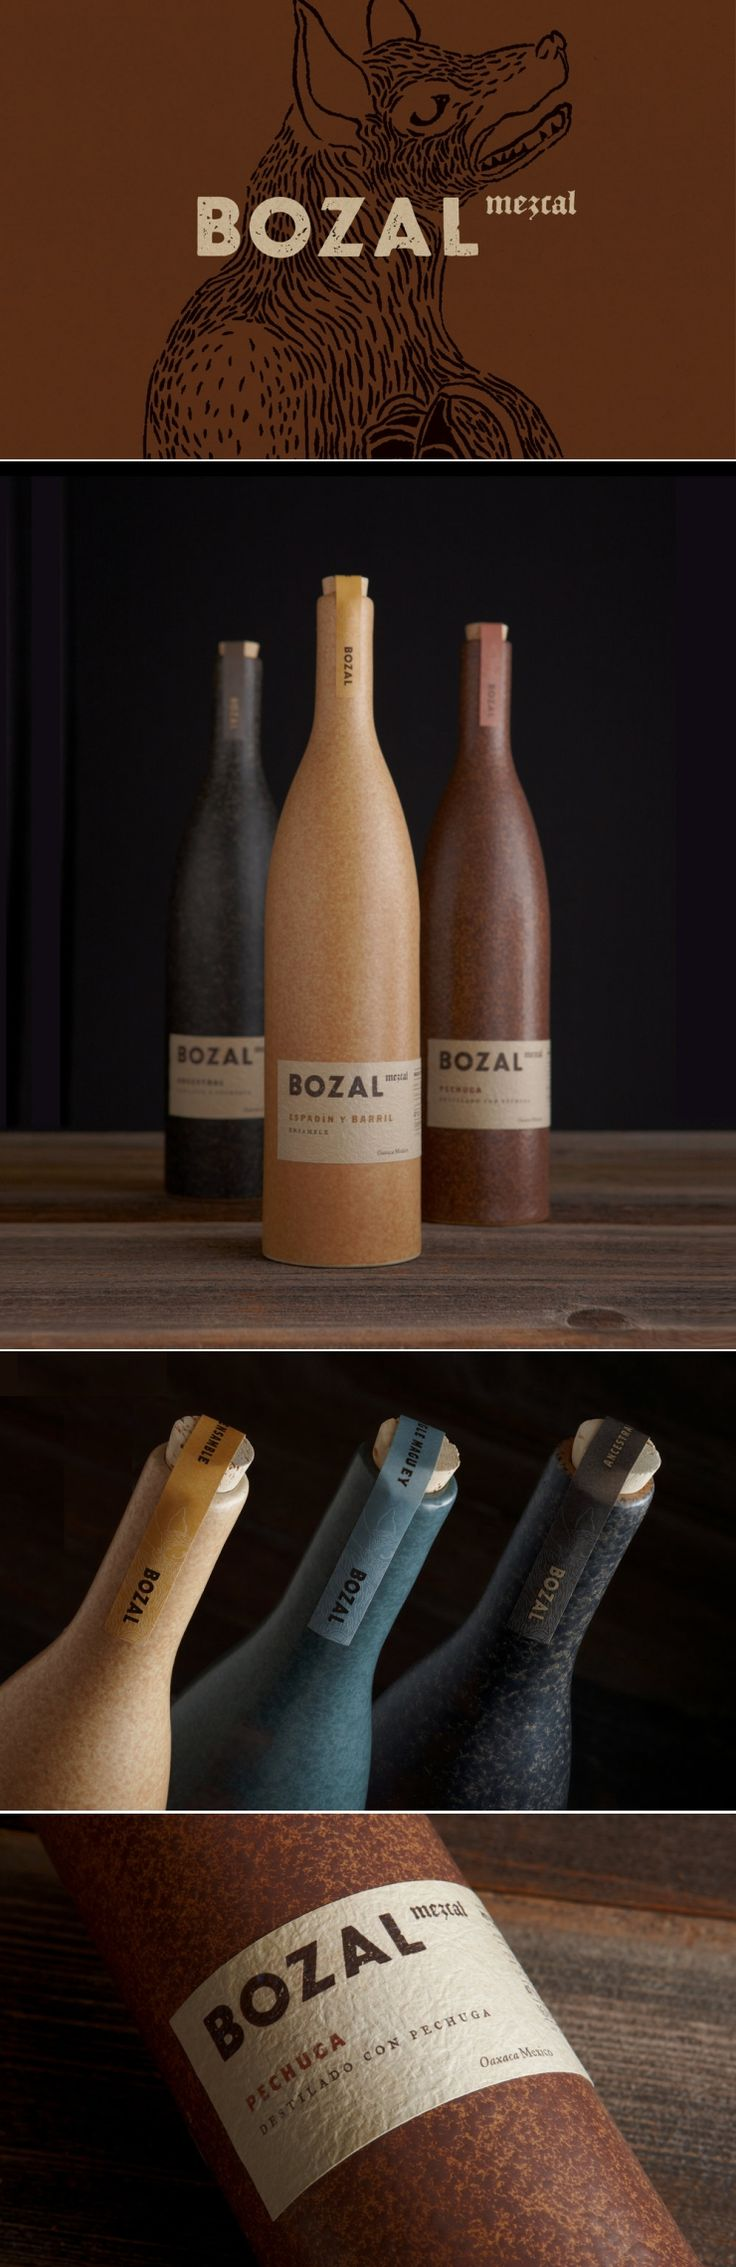 Bozal Mezcal — The Dieline | Packaging & Branding Design & Innovation News